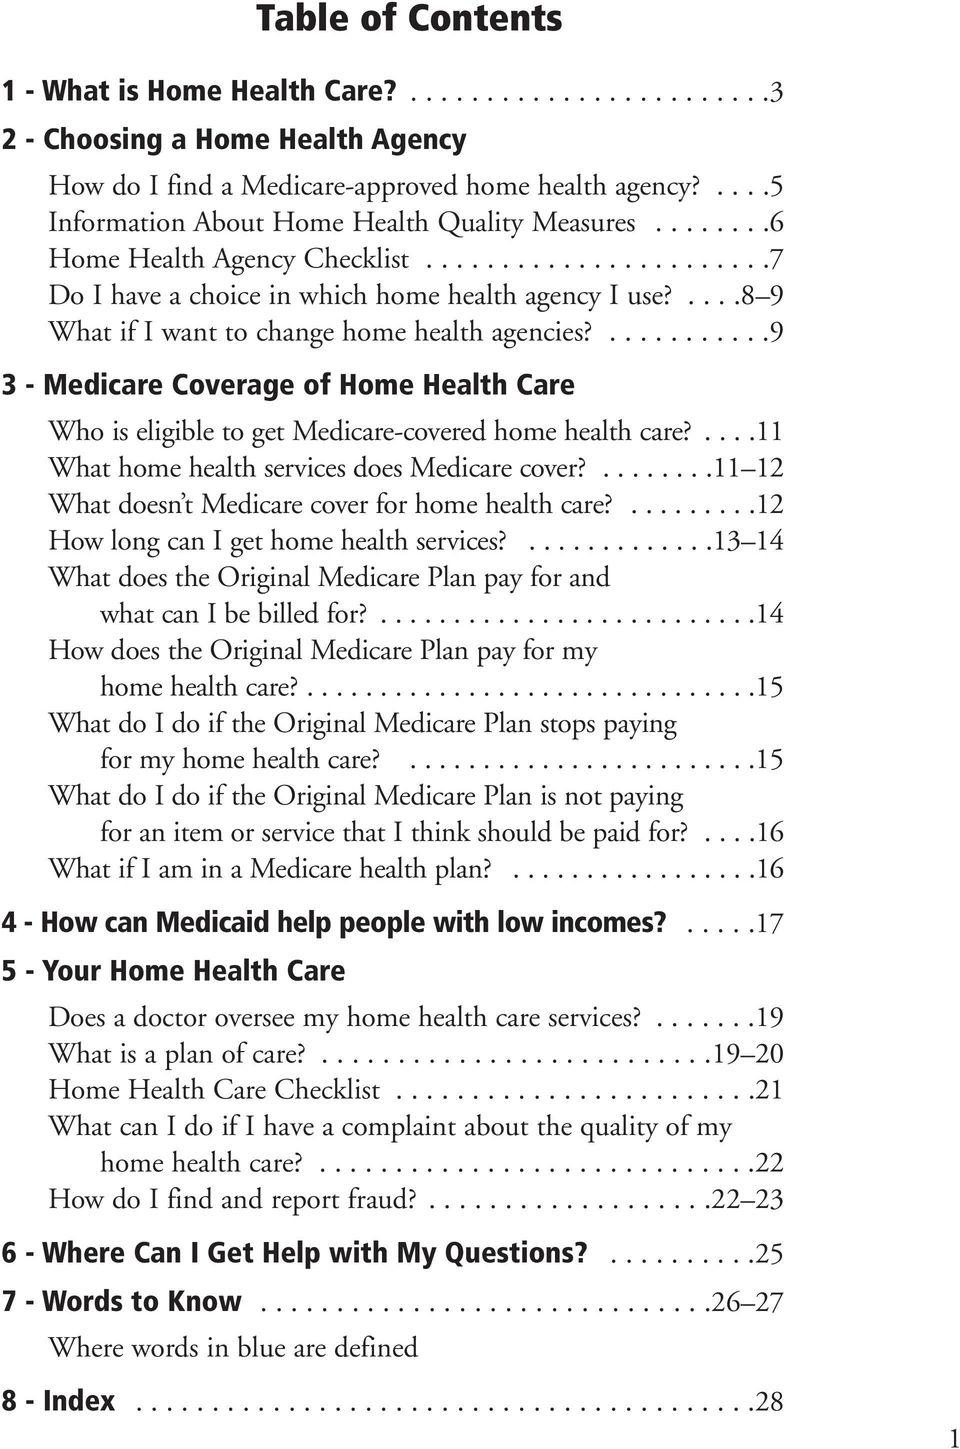 ....8 9 What if I want to change home health agencies?...........9 3 - Medicare Coverage of Home Health Care Who is eligible to get Medicare-covered home health care?